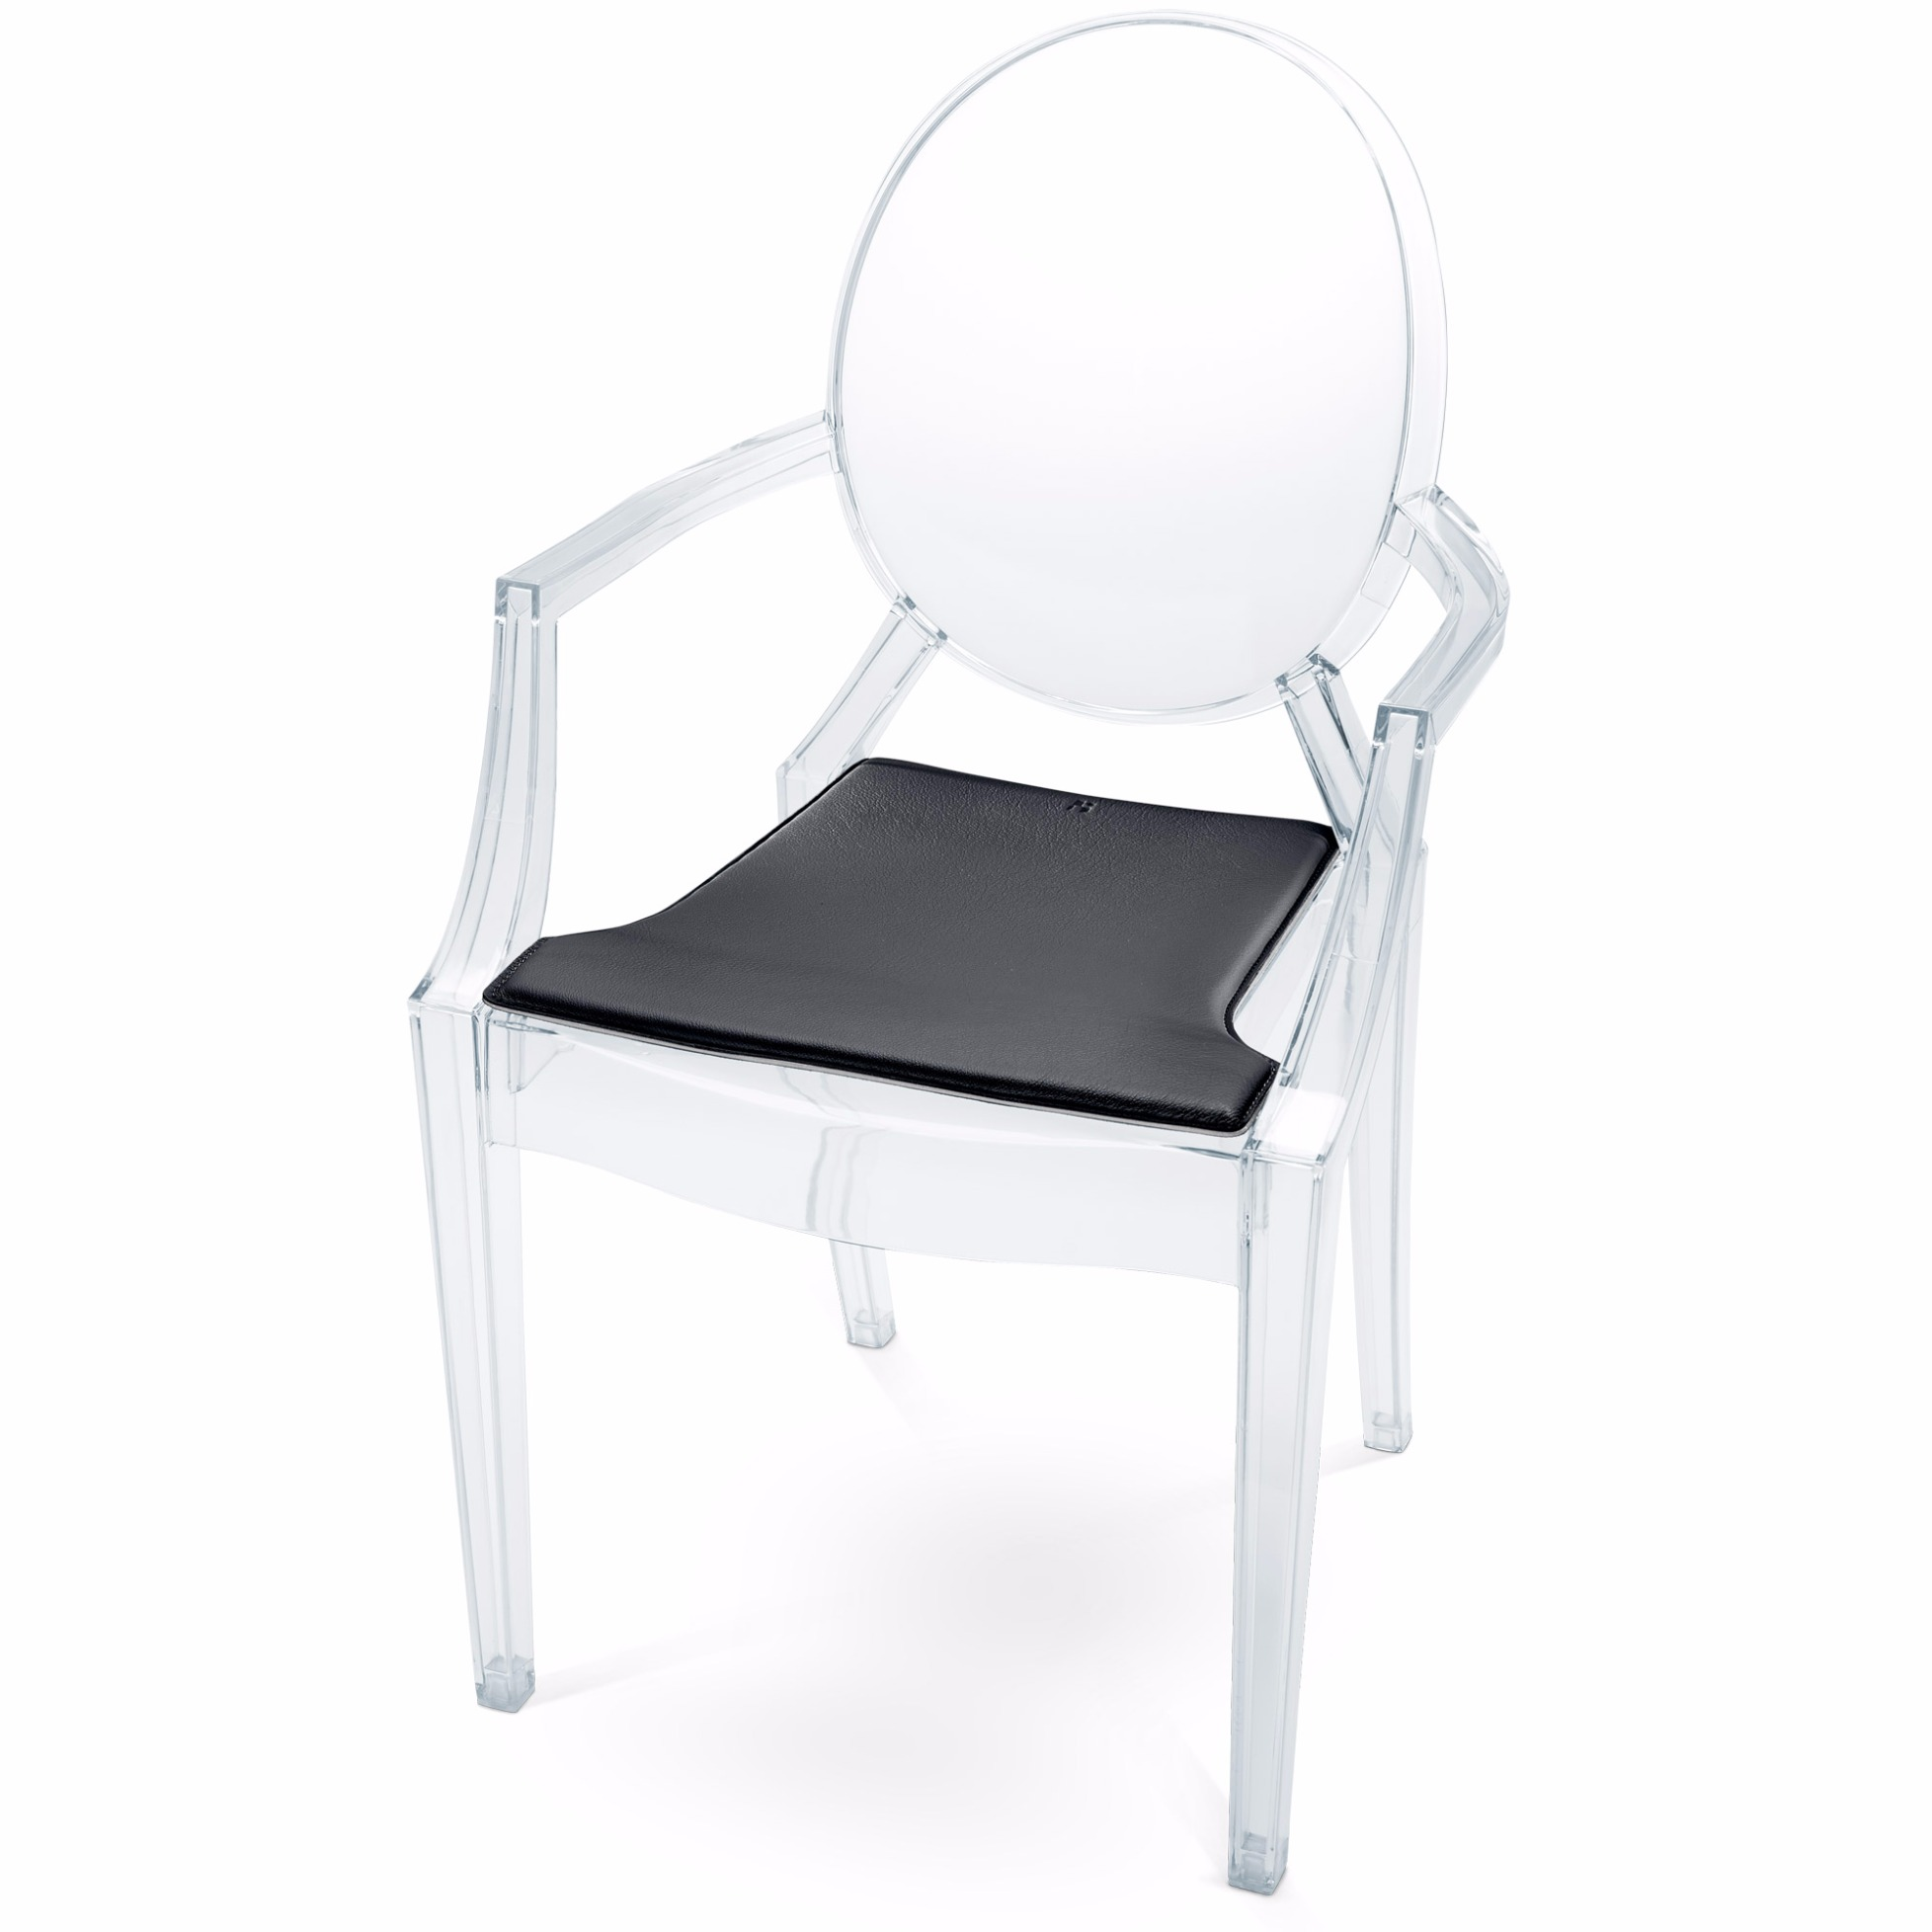 Ghost Chairs With Seat Cushions Back and seat cushions on these